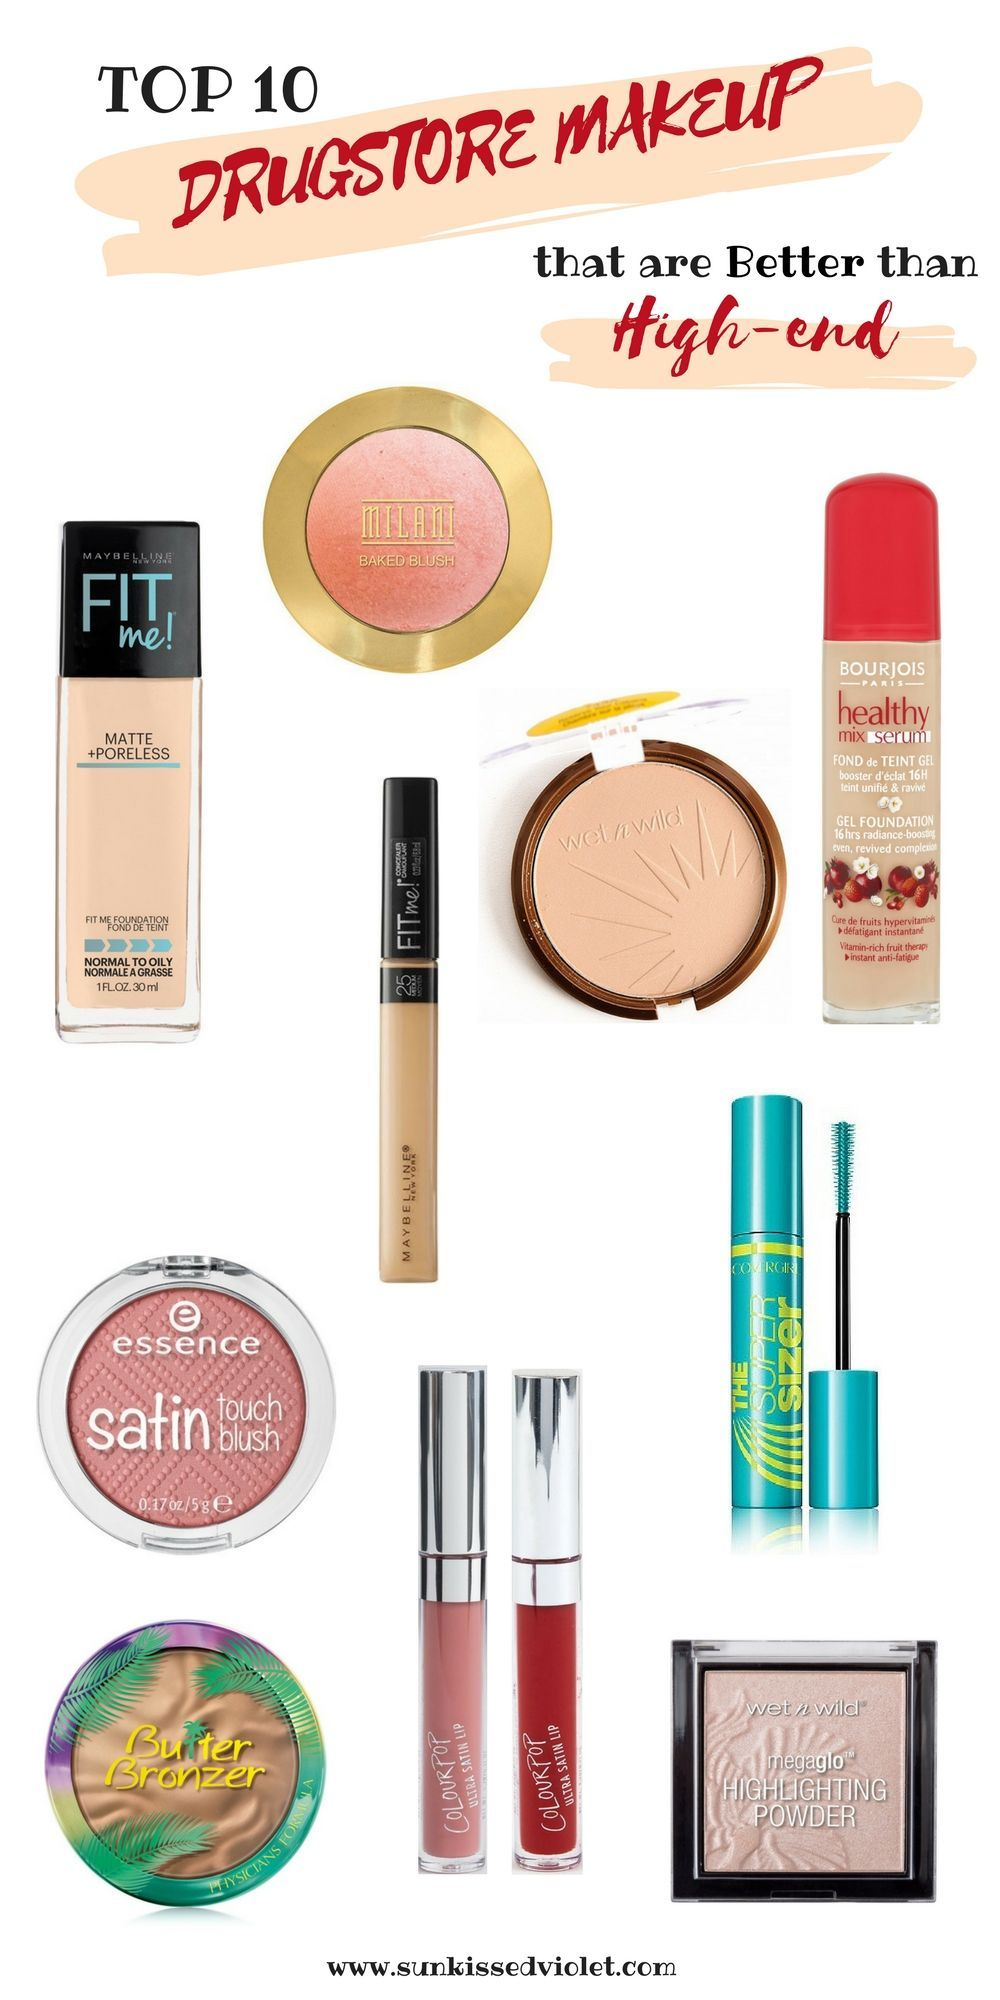 Drugstore Makeup Dupes: TOP 10 DRUGSTORE MAKEUP PRODUCTS THAT ARE BETTER THAN HIGH